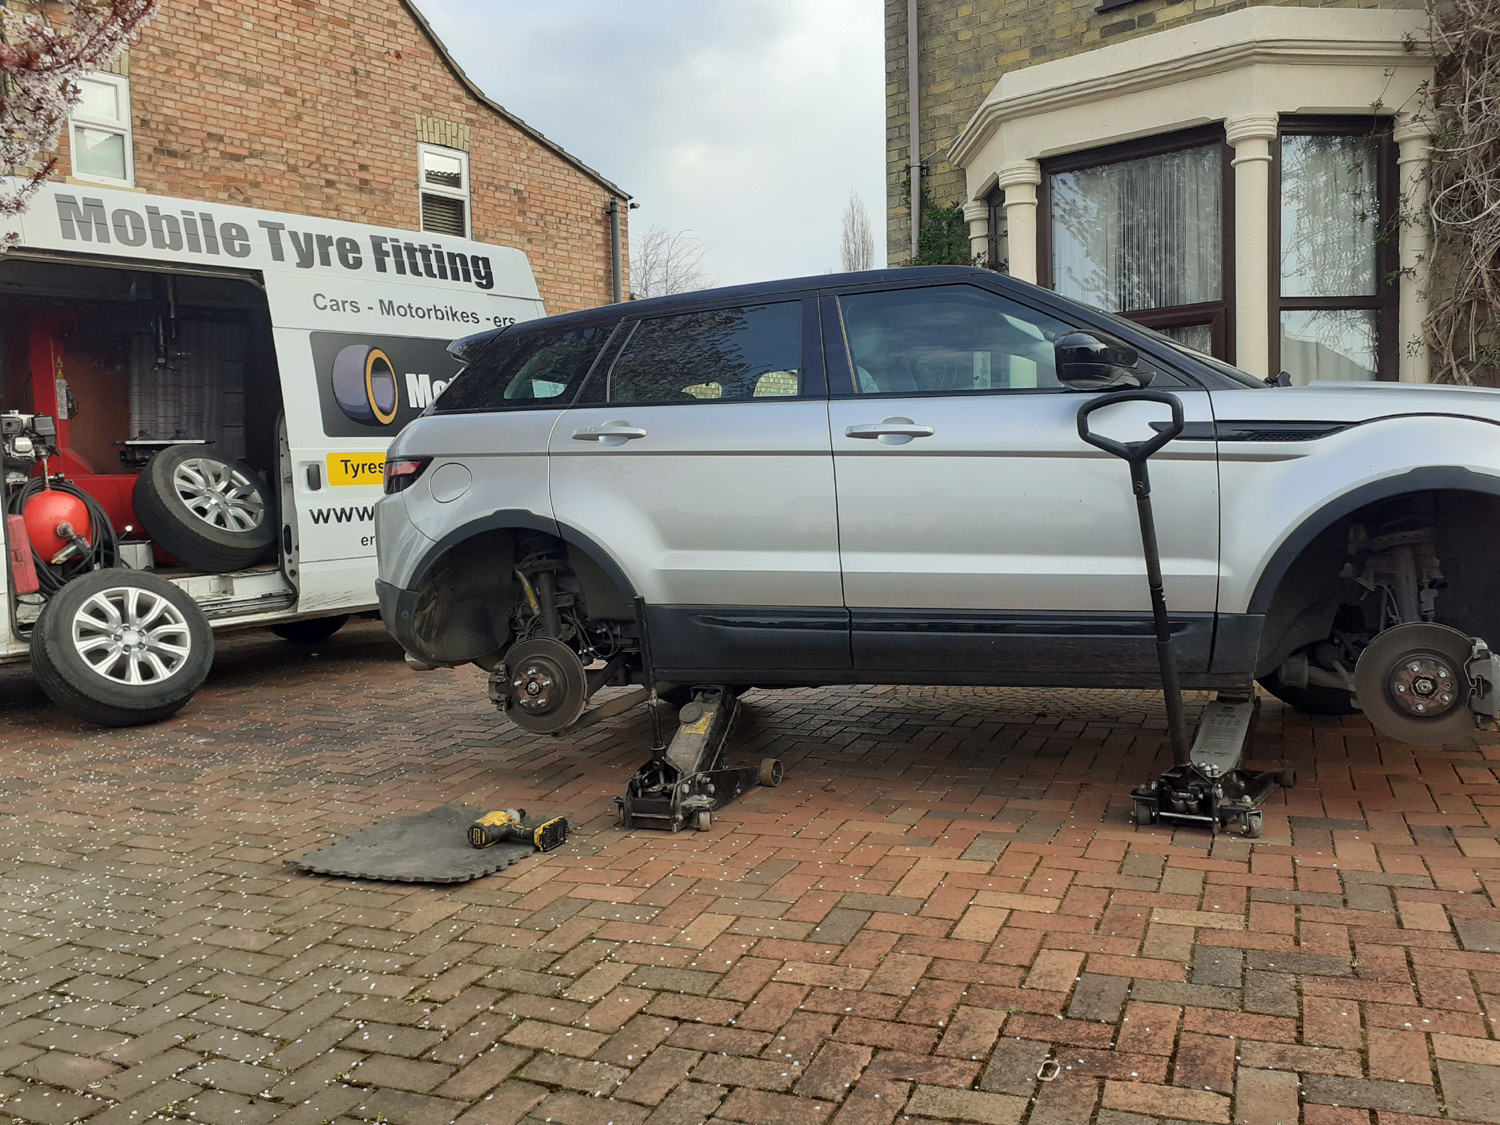 Mototyres 2 u Mobile Tyre fitting Lincolnshire Holbeach Tyres Range Rover Evoque 4x4 Mobile Tyre Fitting Holbeach Tyres Mototyres 2 u Lincolnshire